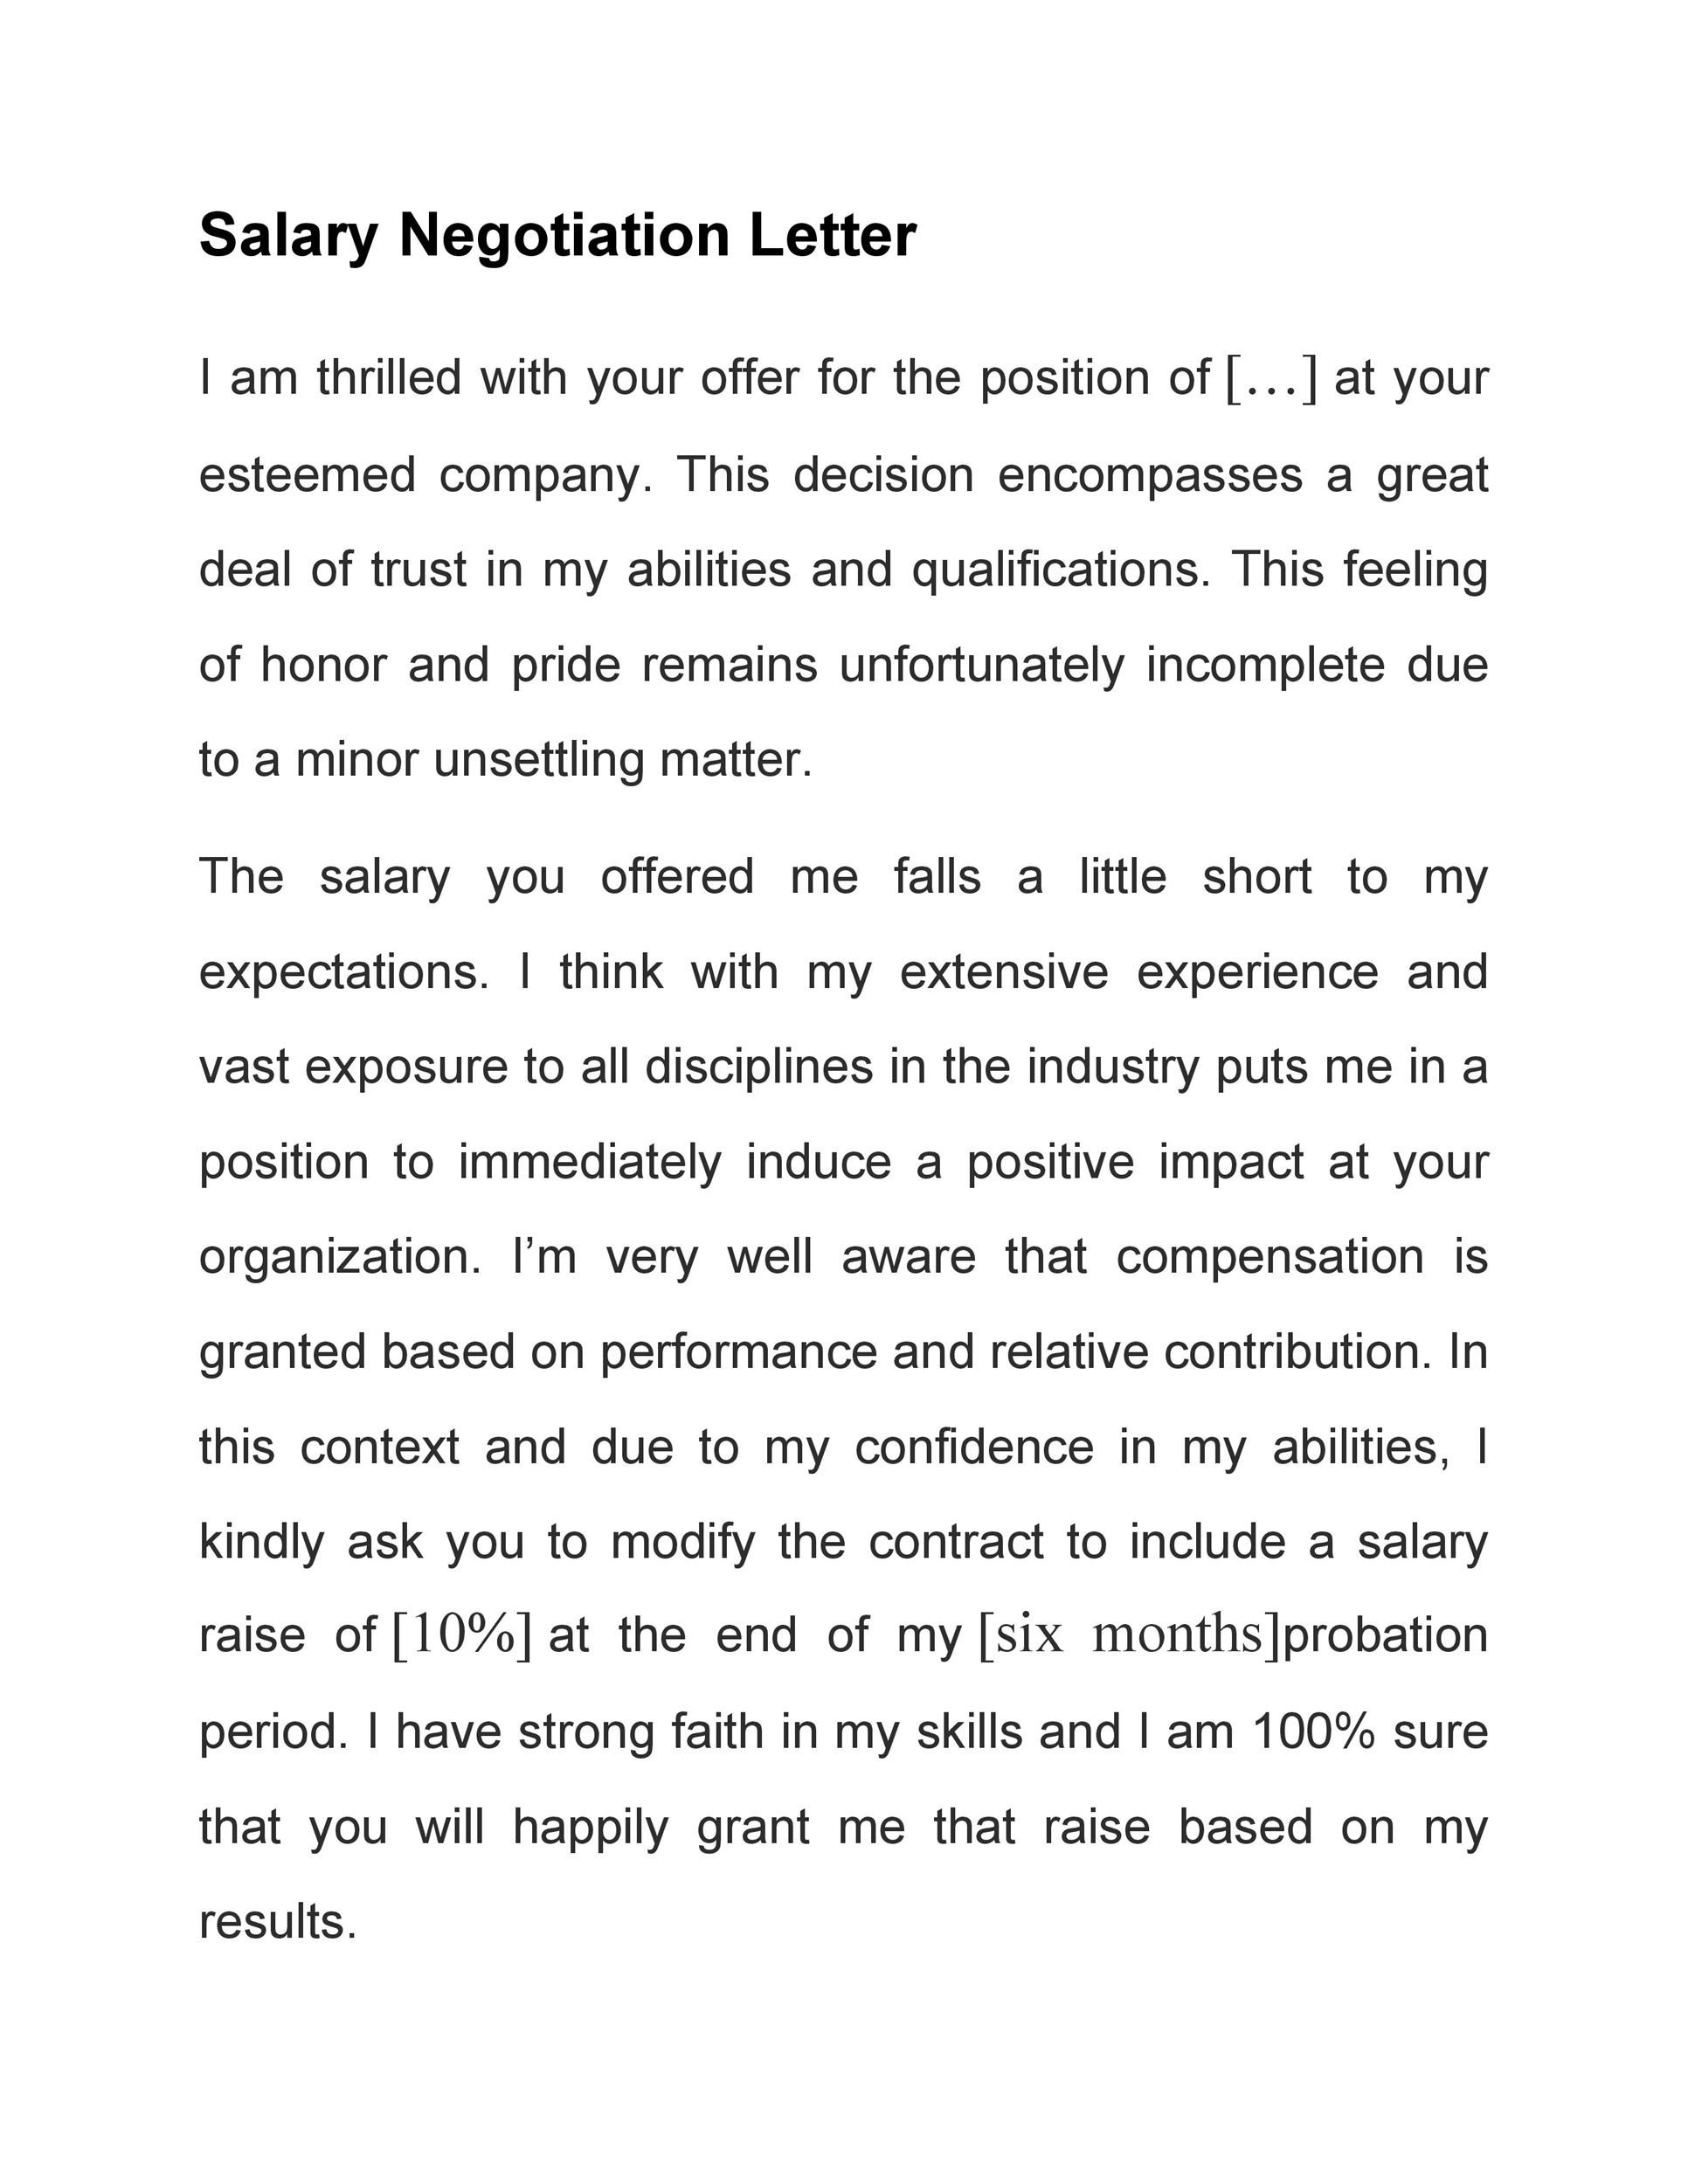 Free salary negotiation letter 25